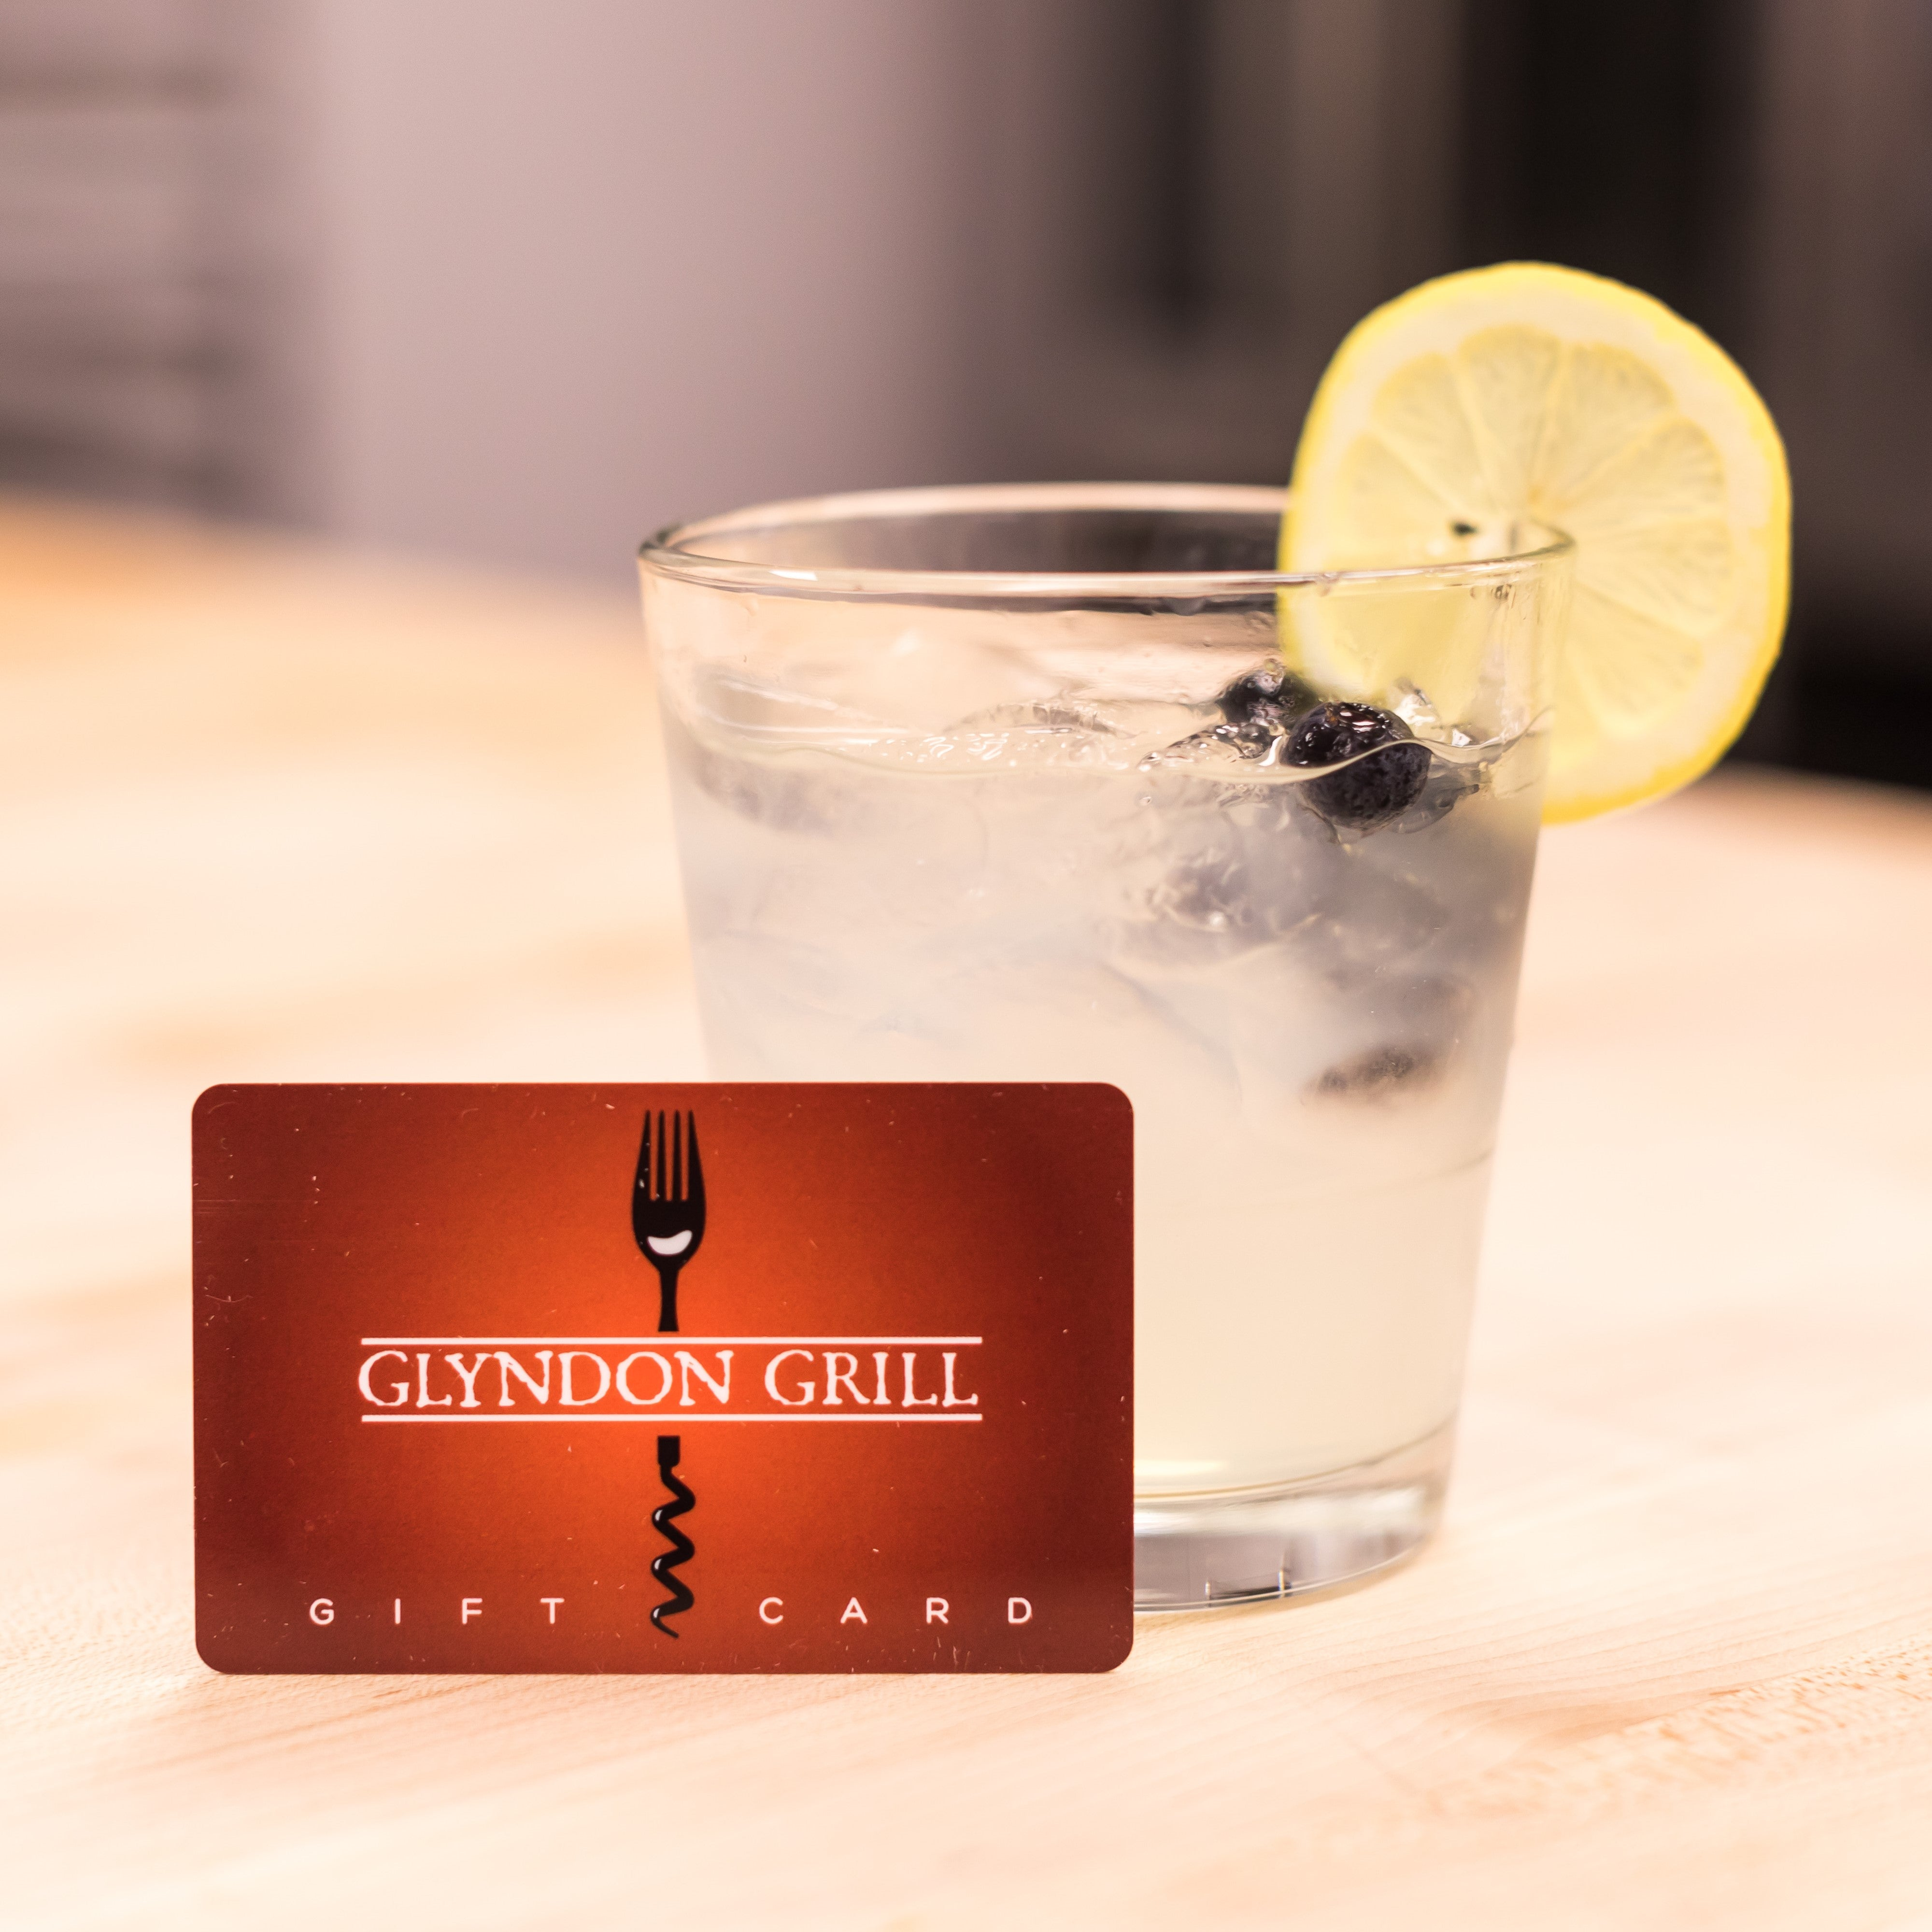 Glyndon Grill Physical Gift Card